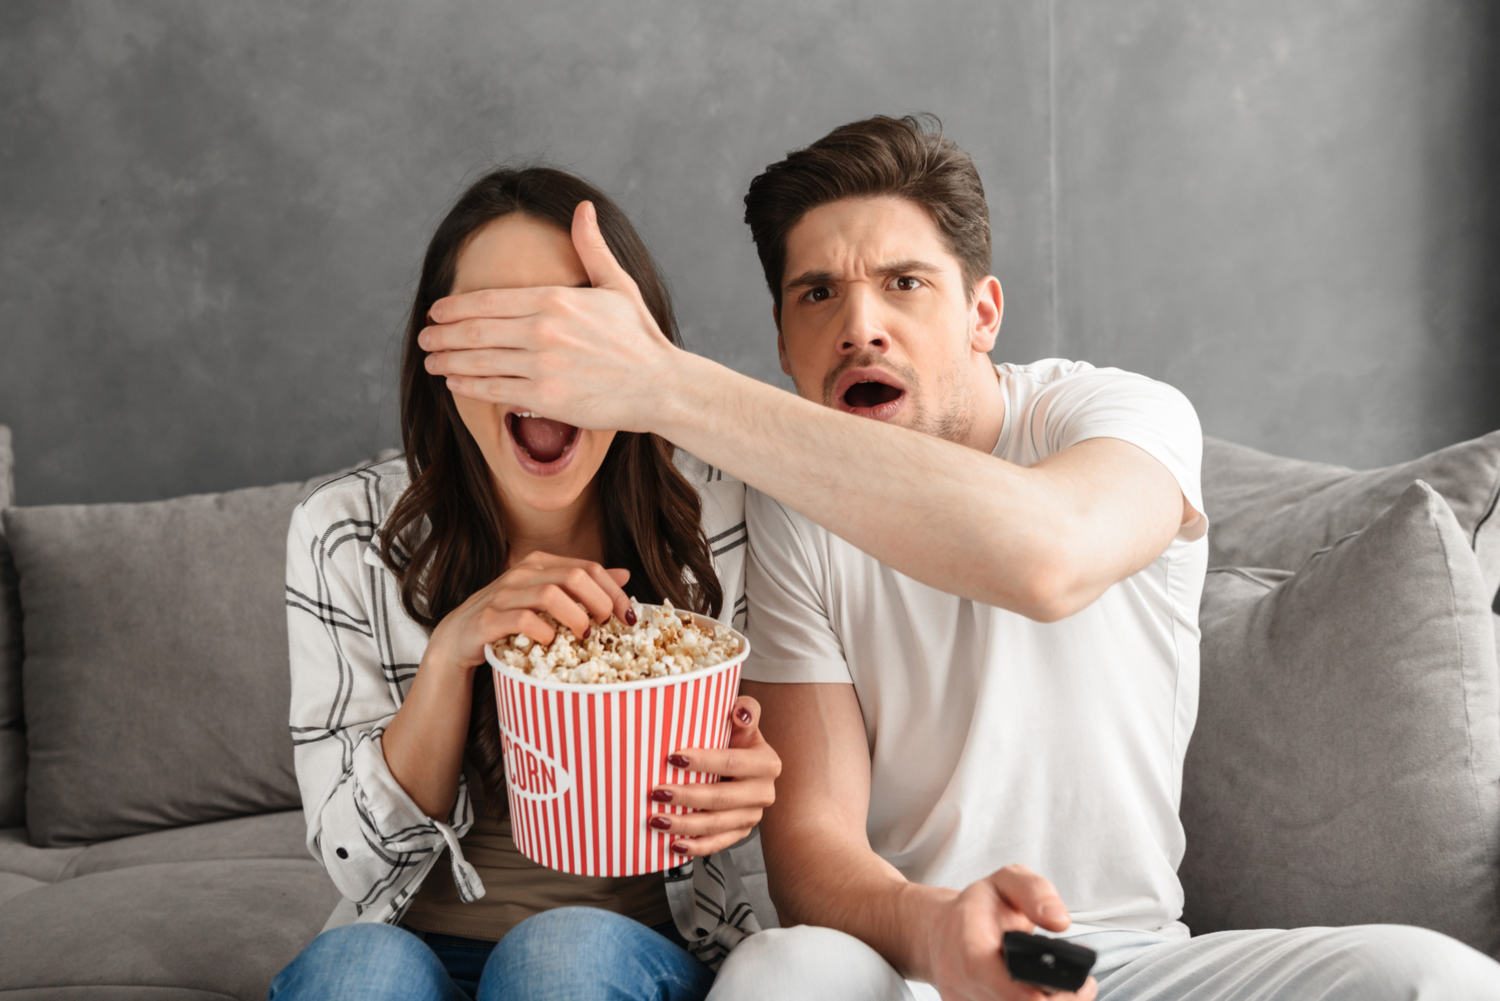 A young couple are sitting on a grey sofa watching a horror movie. The woman is eating popcorn and the man is covering her eyes